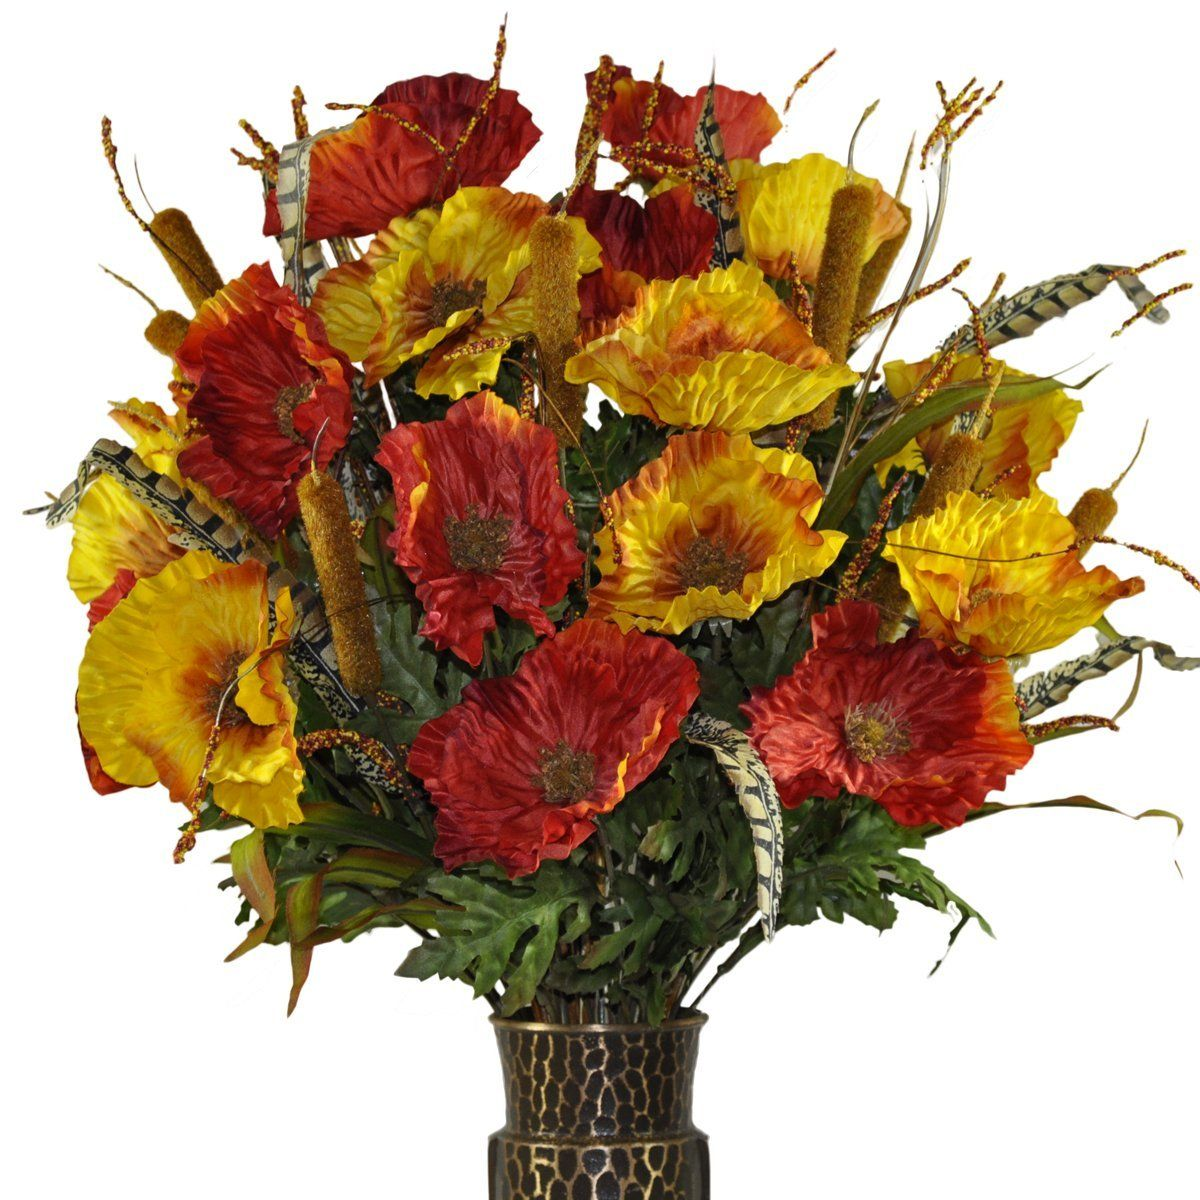 Red And Orange Poppy Silk Flower Bouquet With Stay In The Vase